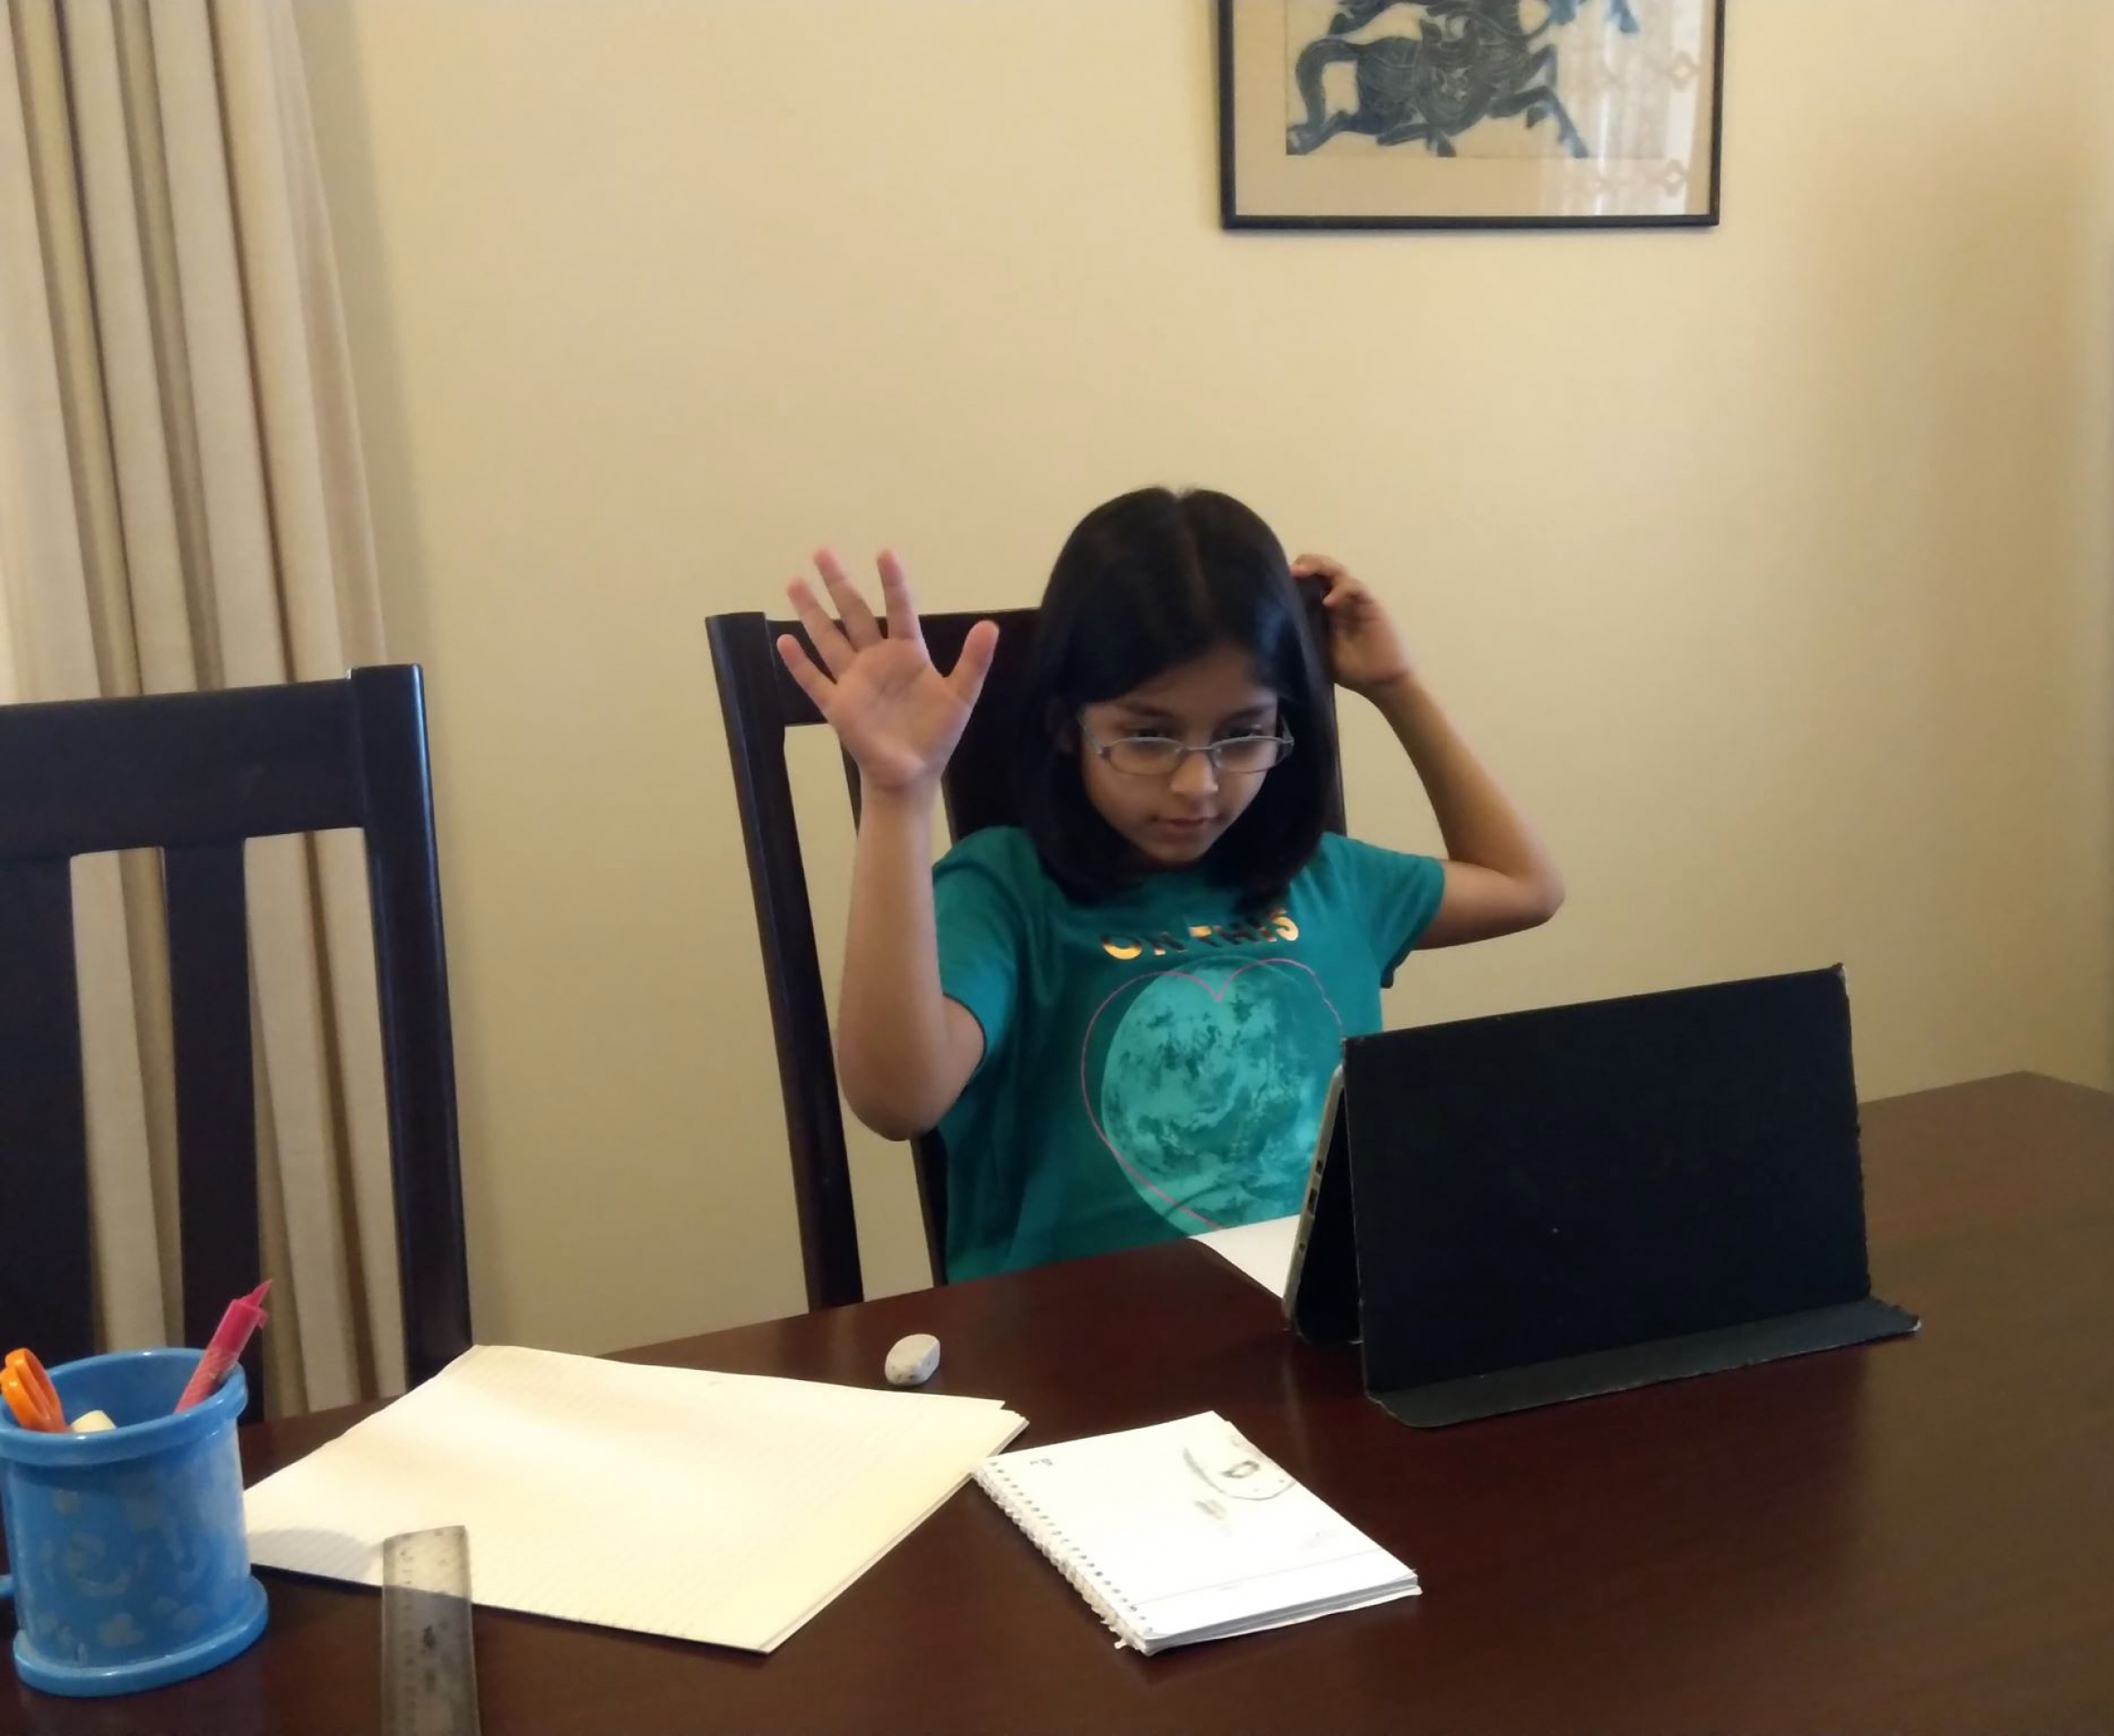 Farah Husain of Karachi, Pakistan, participates in her online school lesson from home.